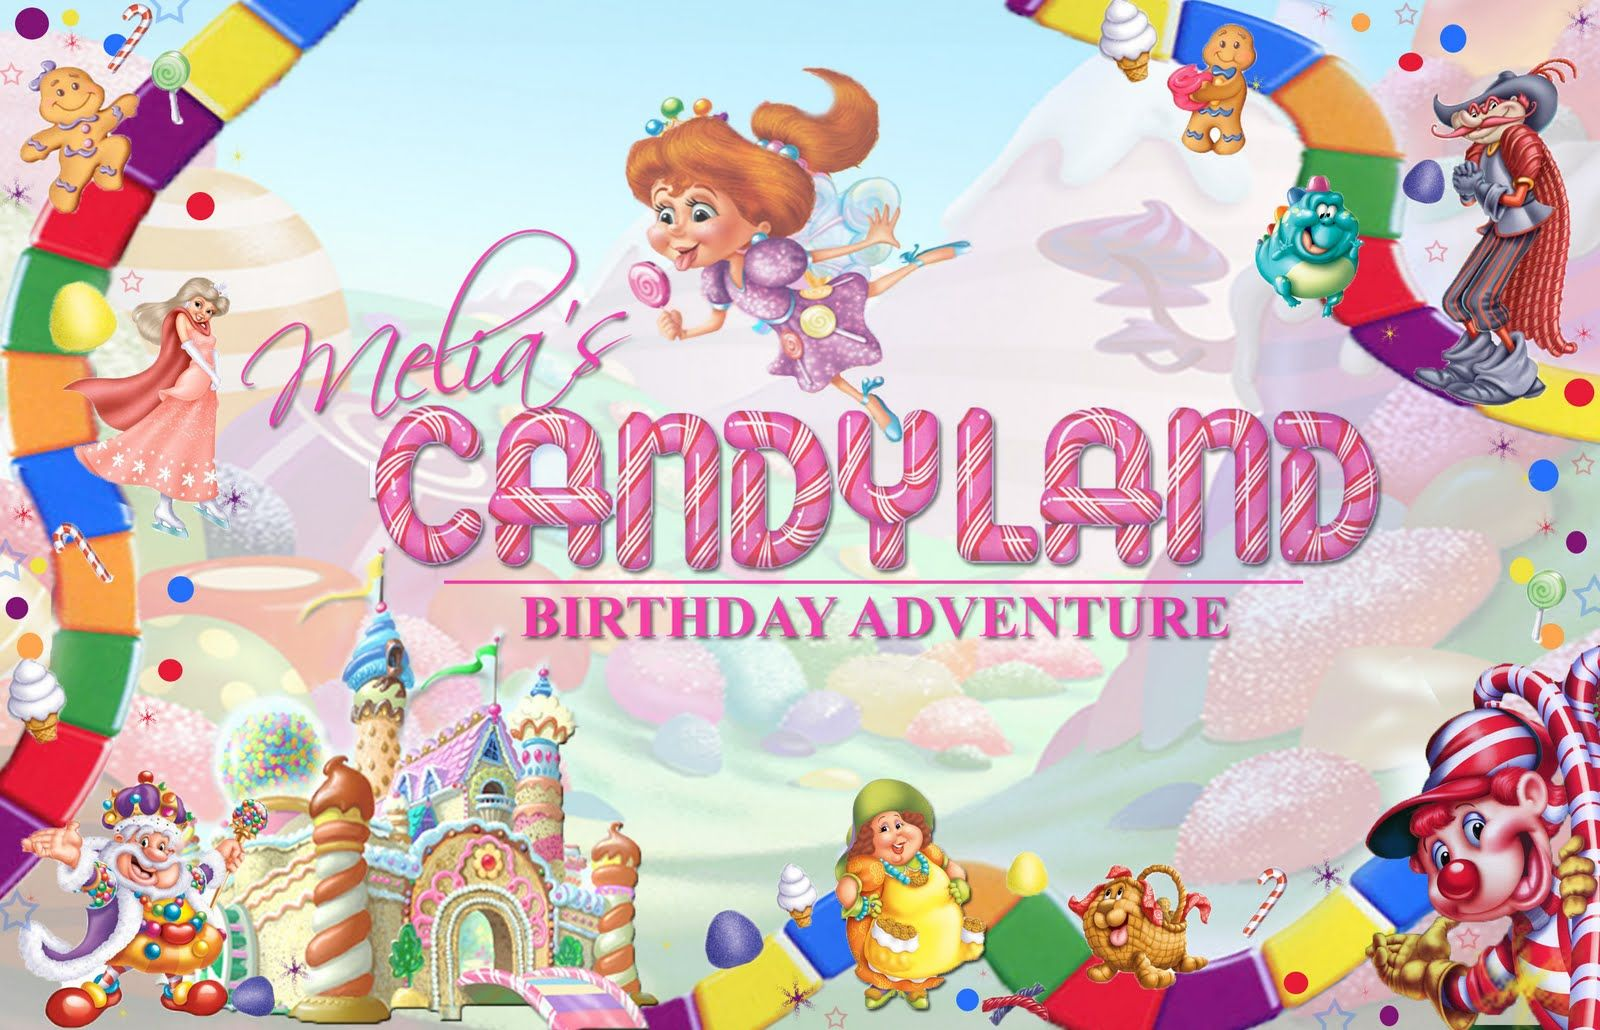 candyland free invite template Google Search Megs 18th bday